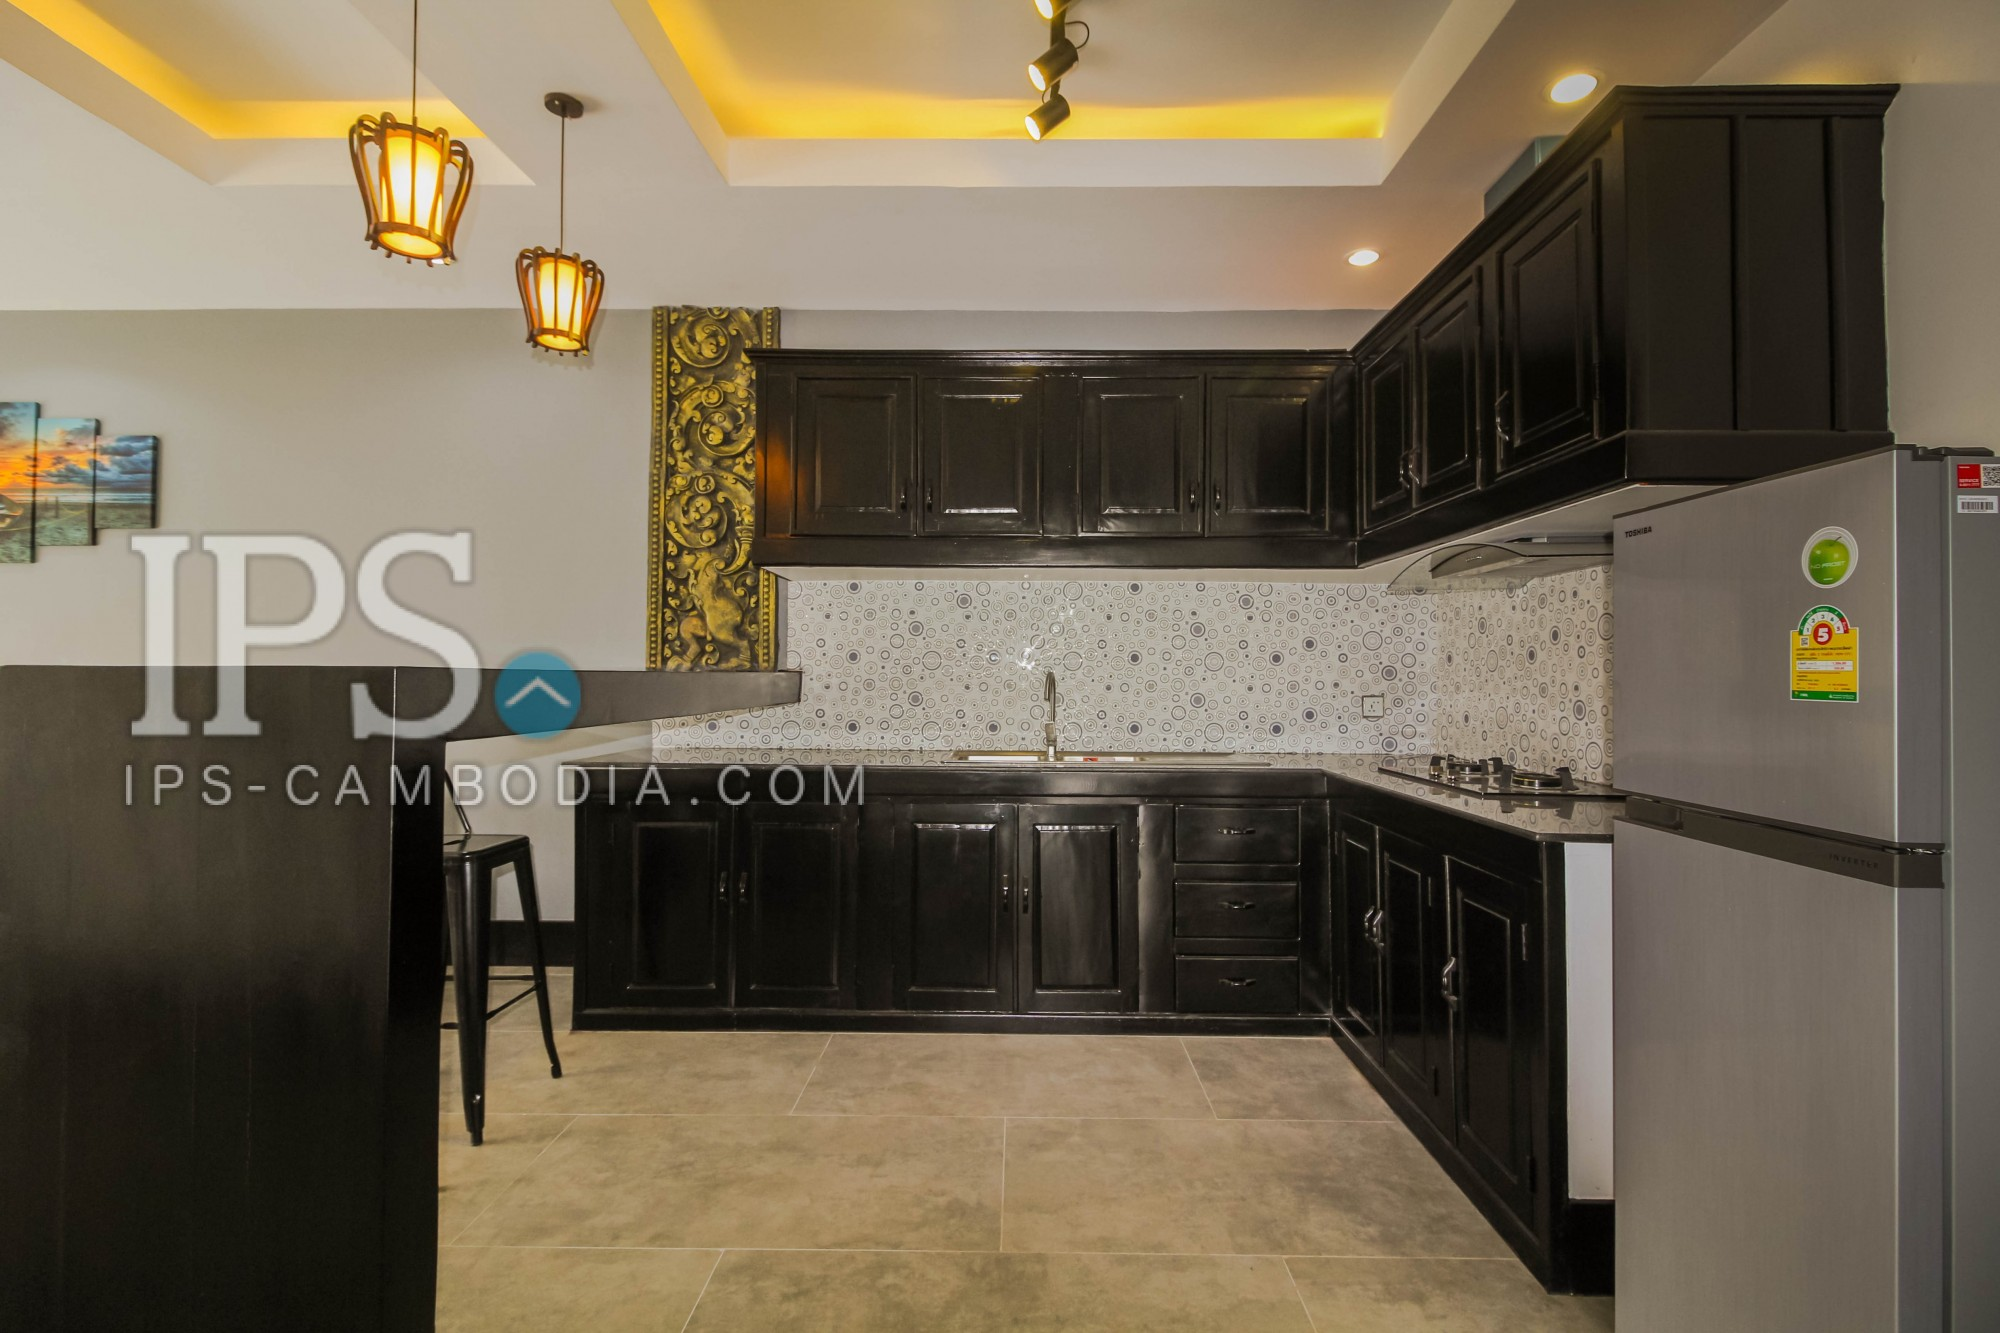 2 Bedroom Apartment for Rent - National Road 6, Siem Reap